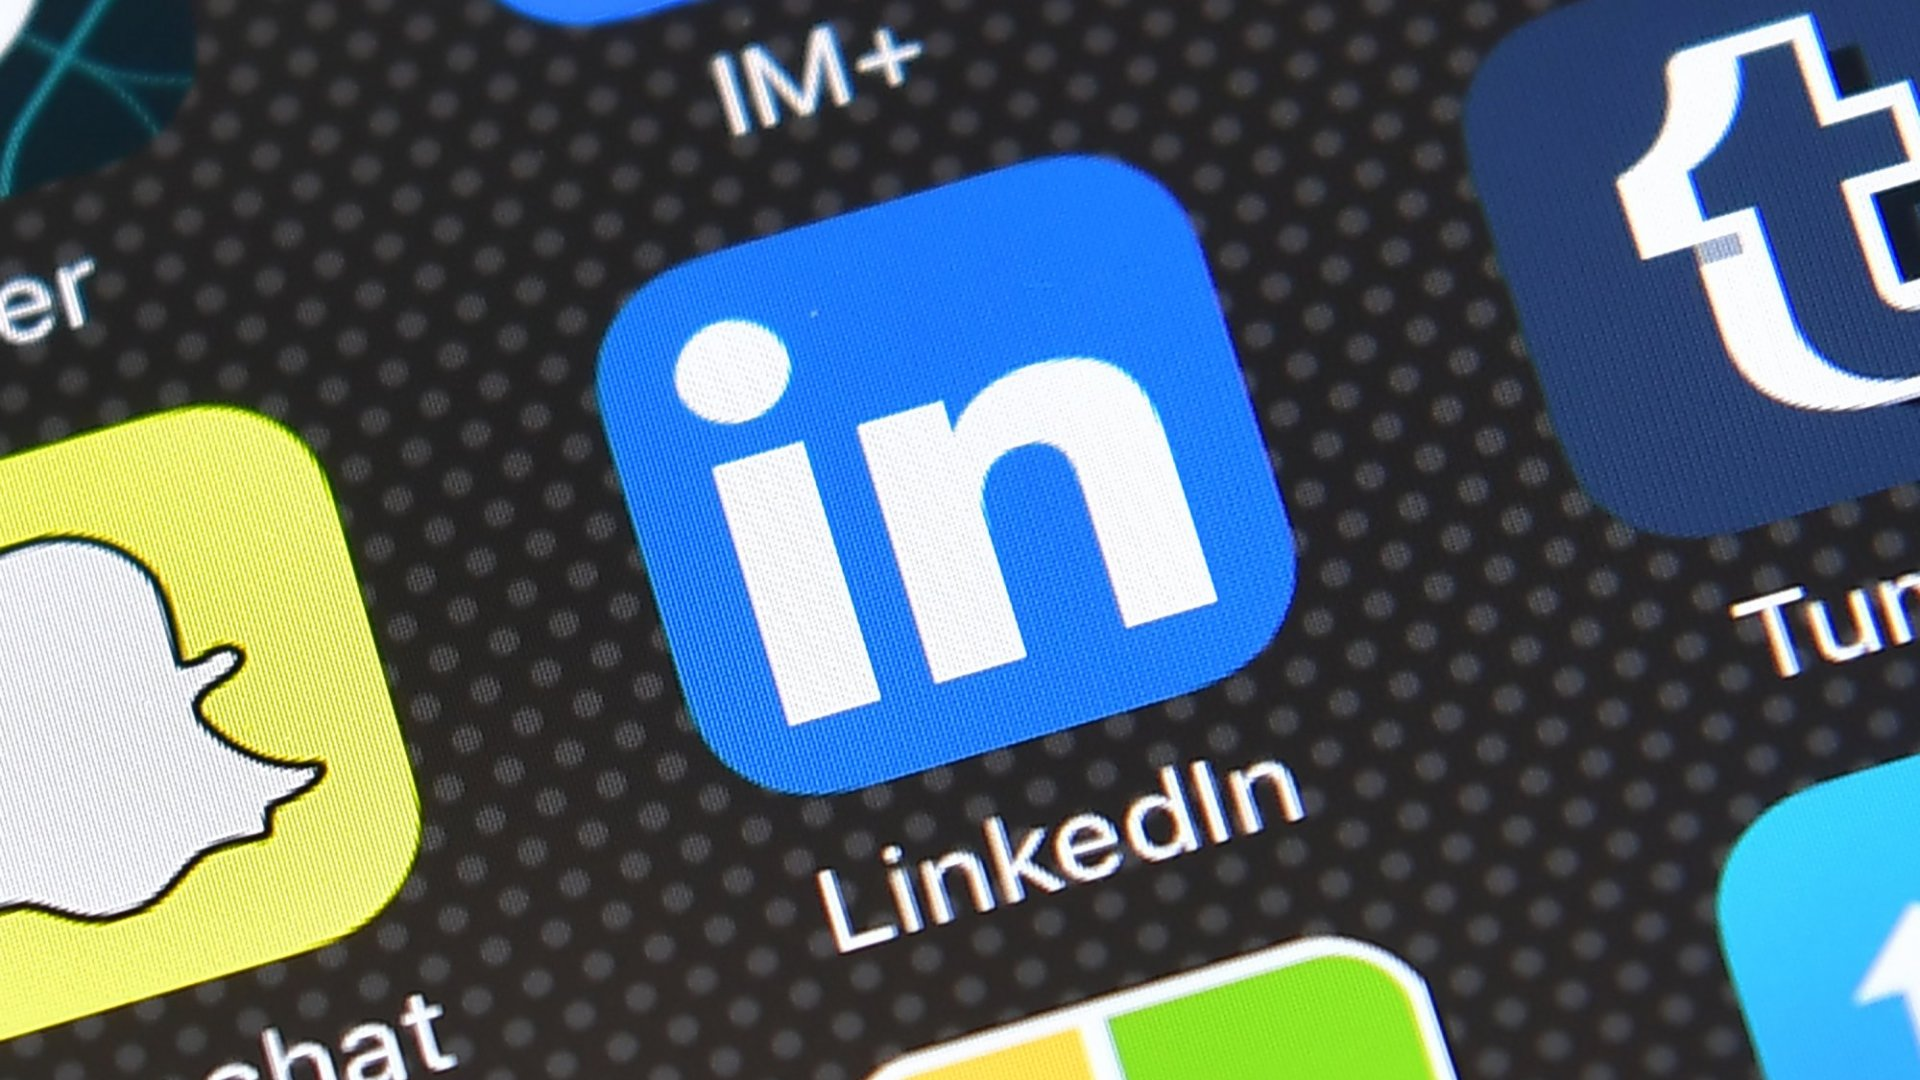 How To Leverage the LinkedIn Feature Users Are Going Crazy For